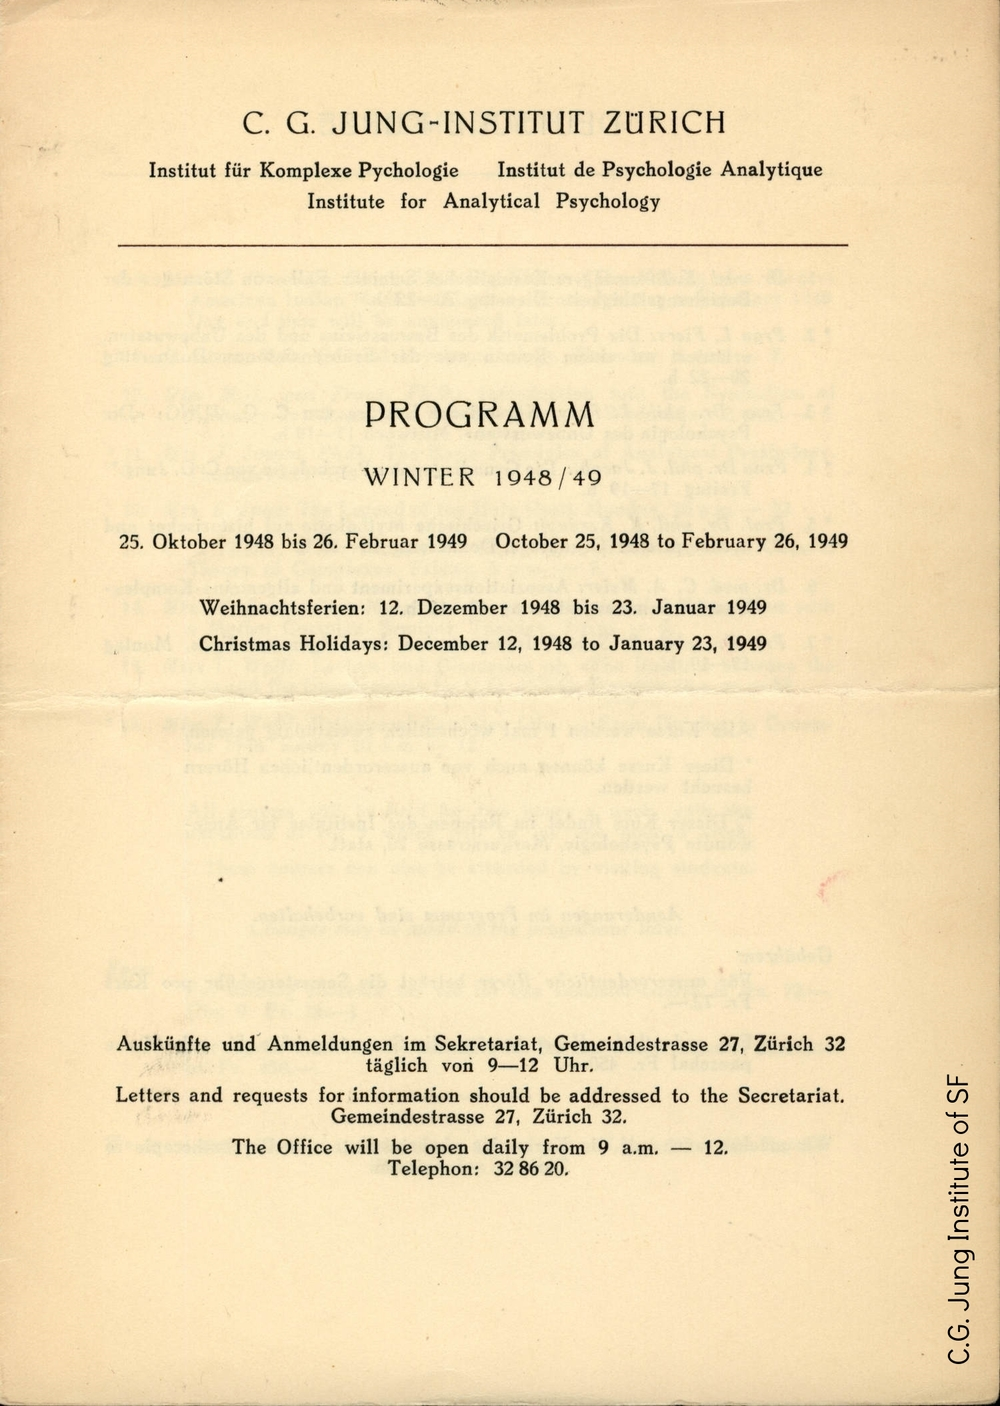 Program for the C.G. Jung Institut Zurich (Winter 1948-1949)